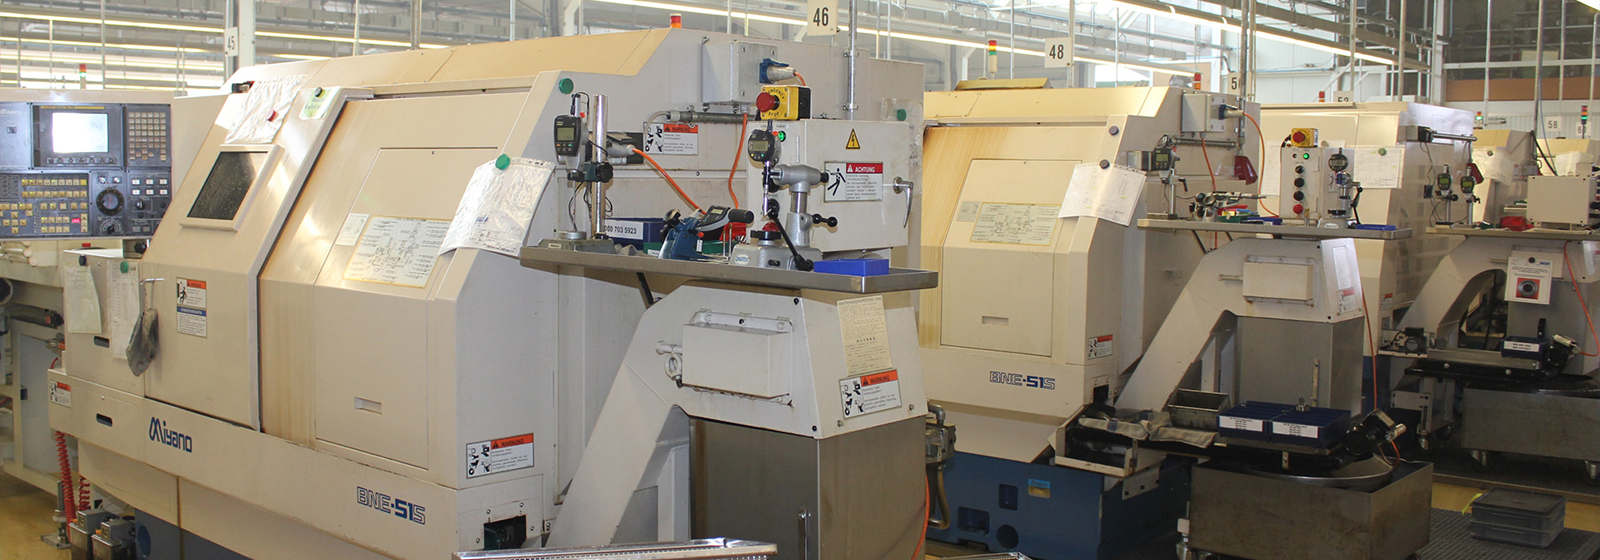 Seeger production facility with CNC machines